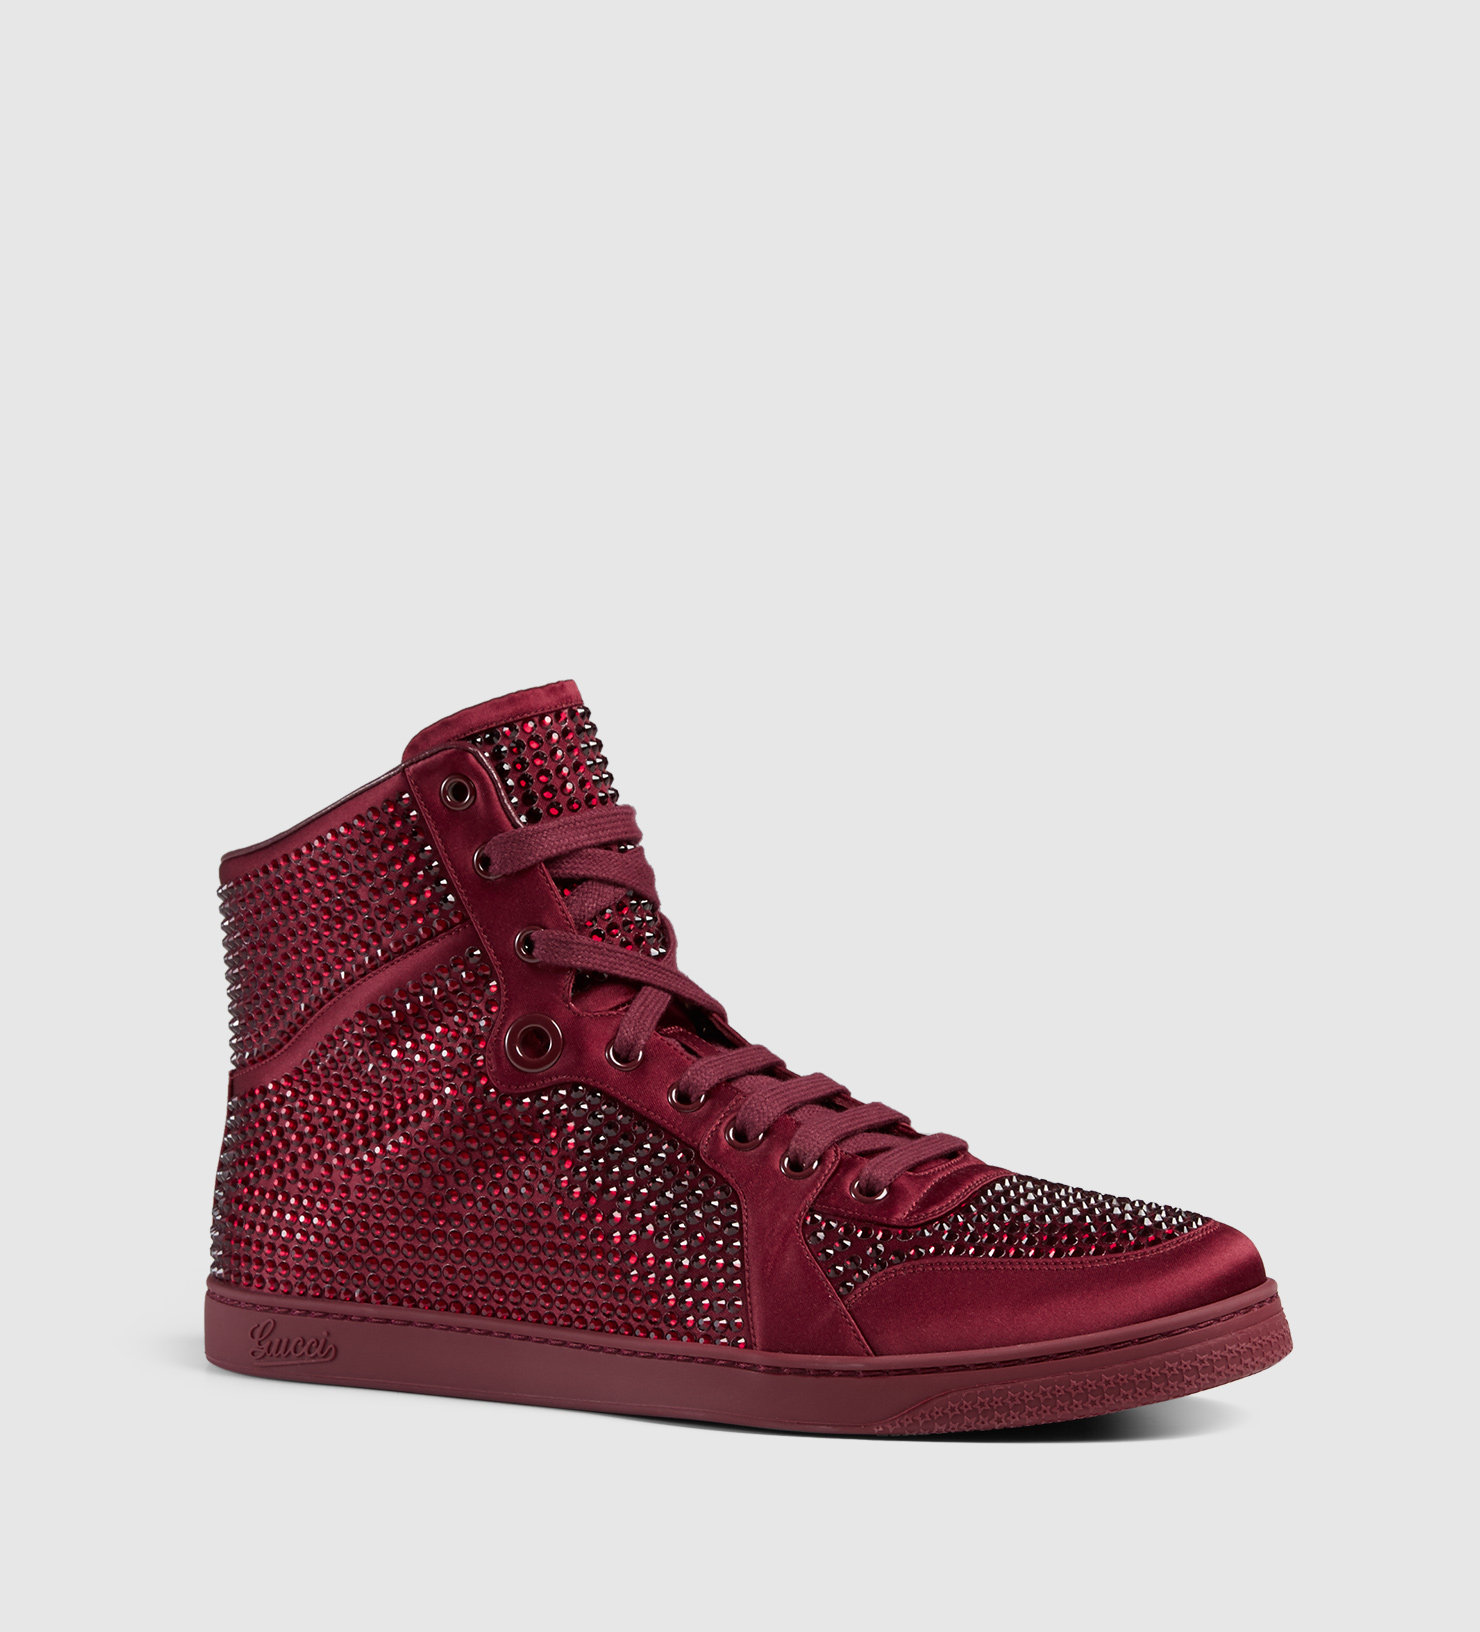 3e73ec4e5ac Lyst - Gucci High-top Sneaker With Crystal Studs in Red for Men